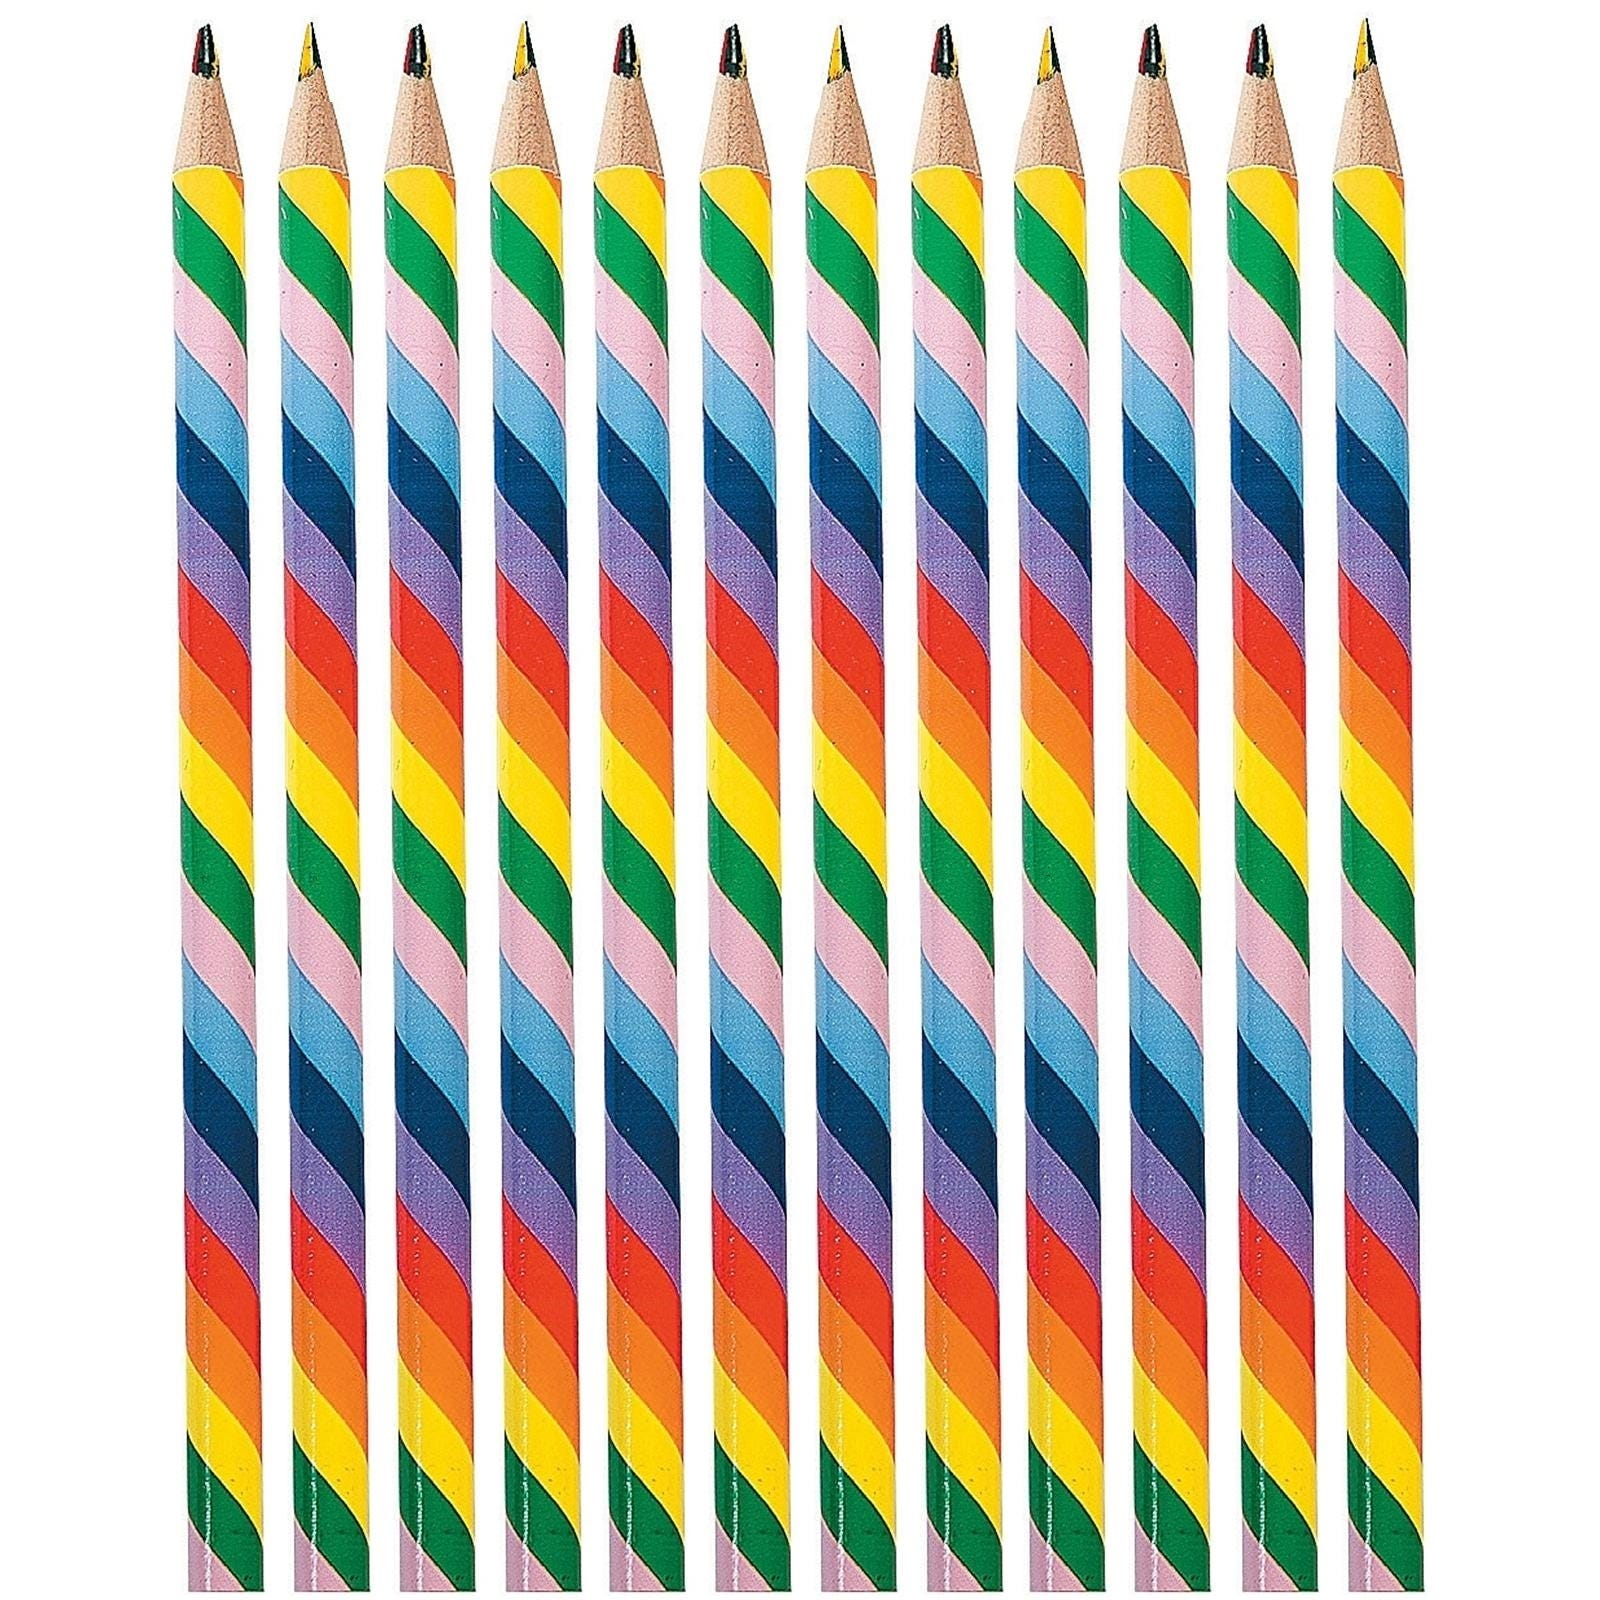 RAINBOW-COLOURED-PENCILS-PARTY-SUPPLIES-FAVOURS-SCHOOL-REWARDS-PACK-OF-12